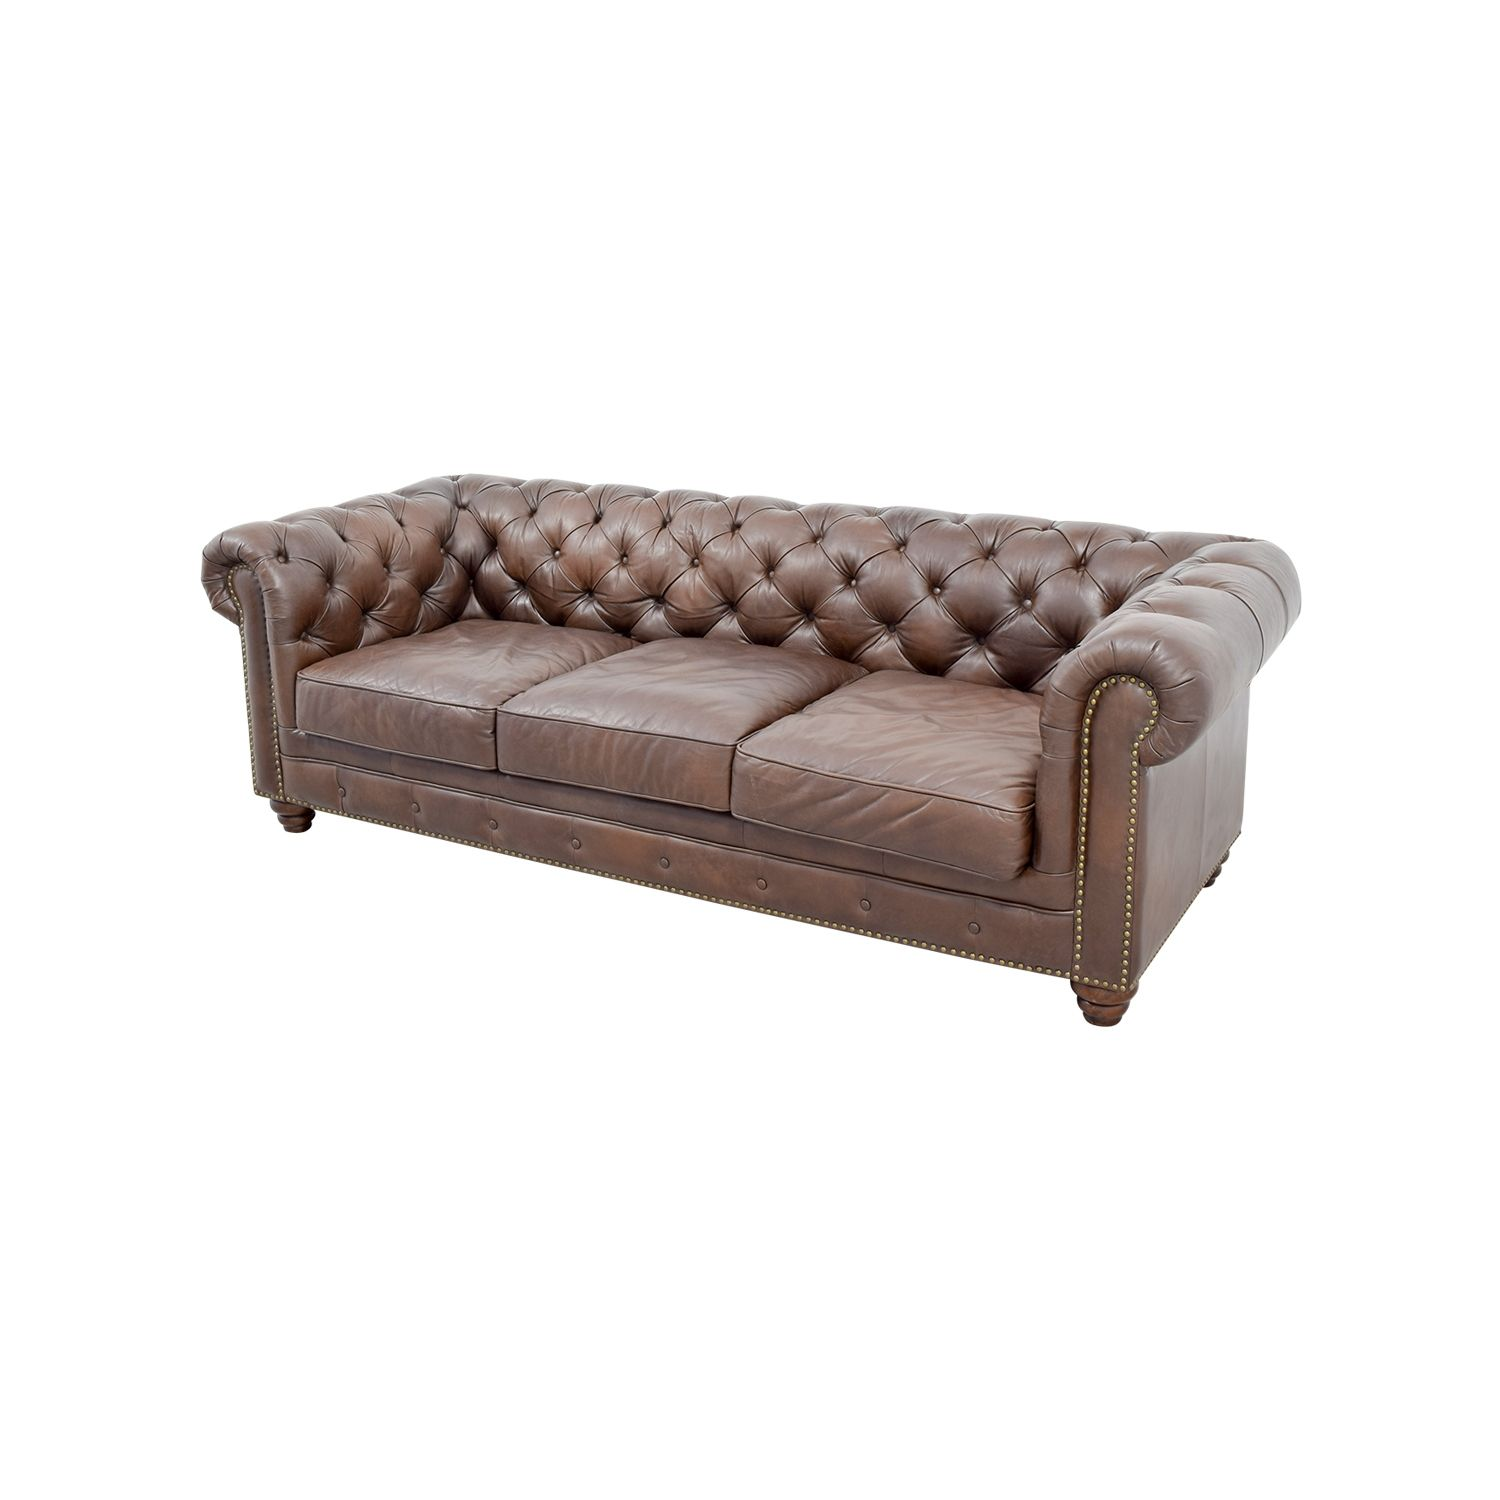 Bellanest Stevens Leather Sofa